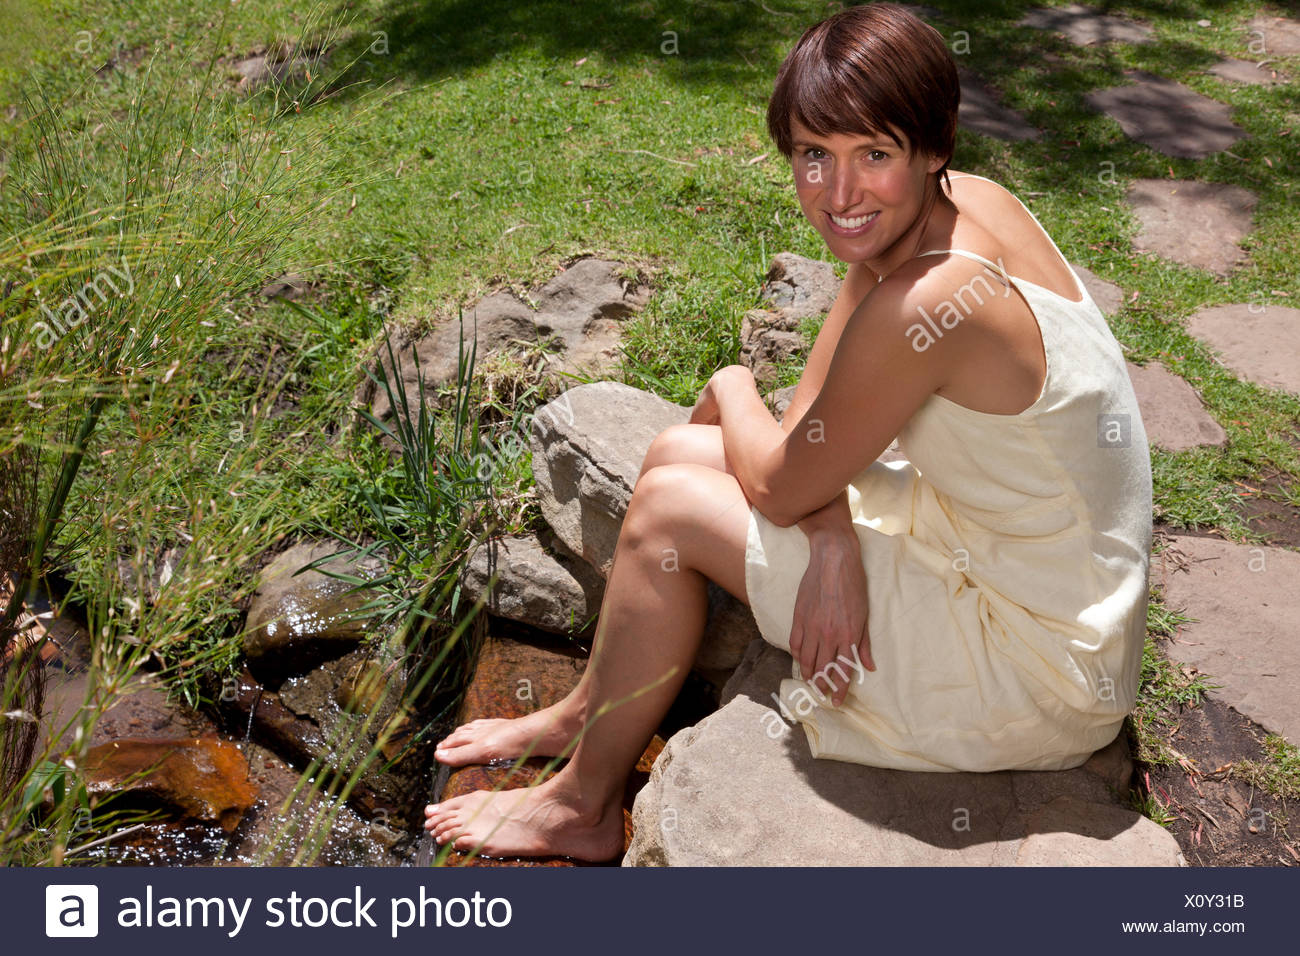 Smiling woman sitting with feet in stream looking at camera - Stock Image